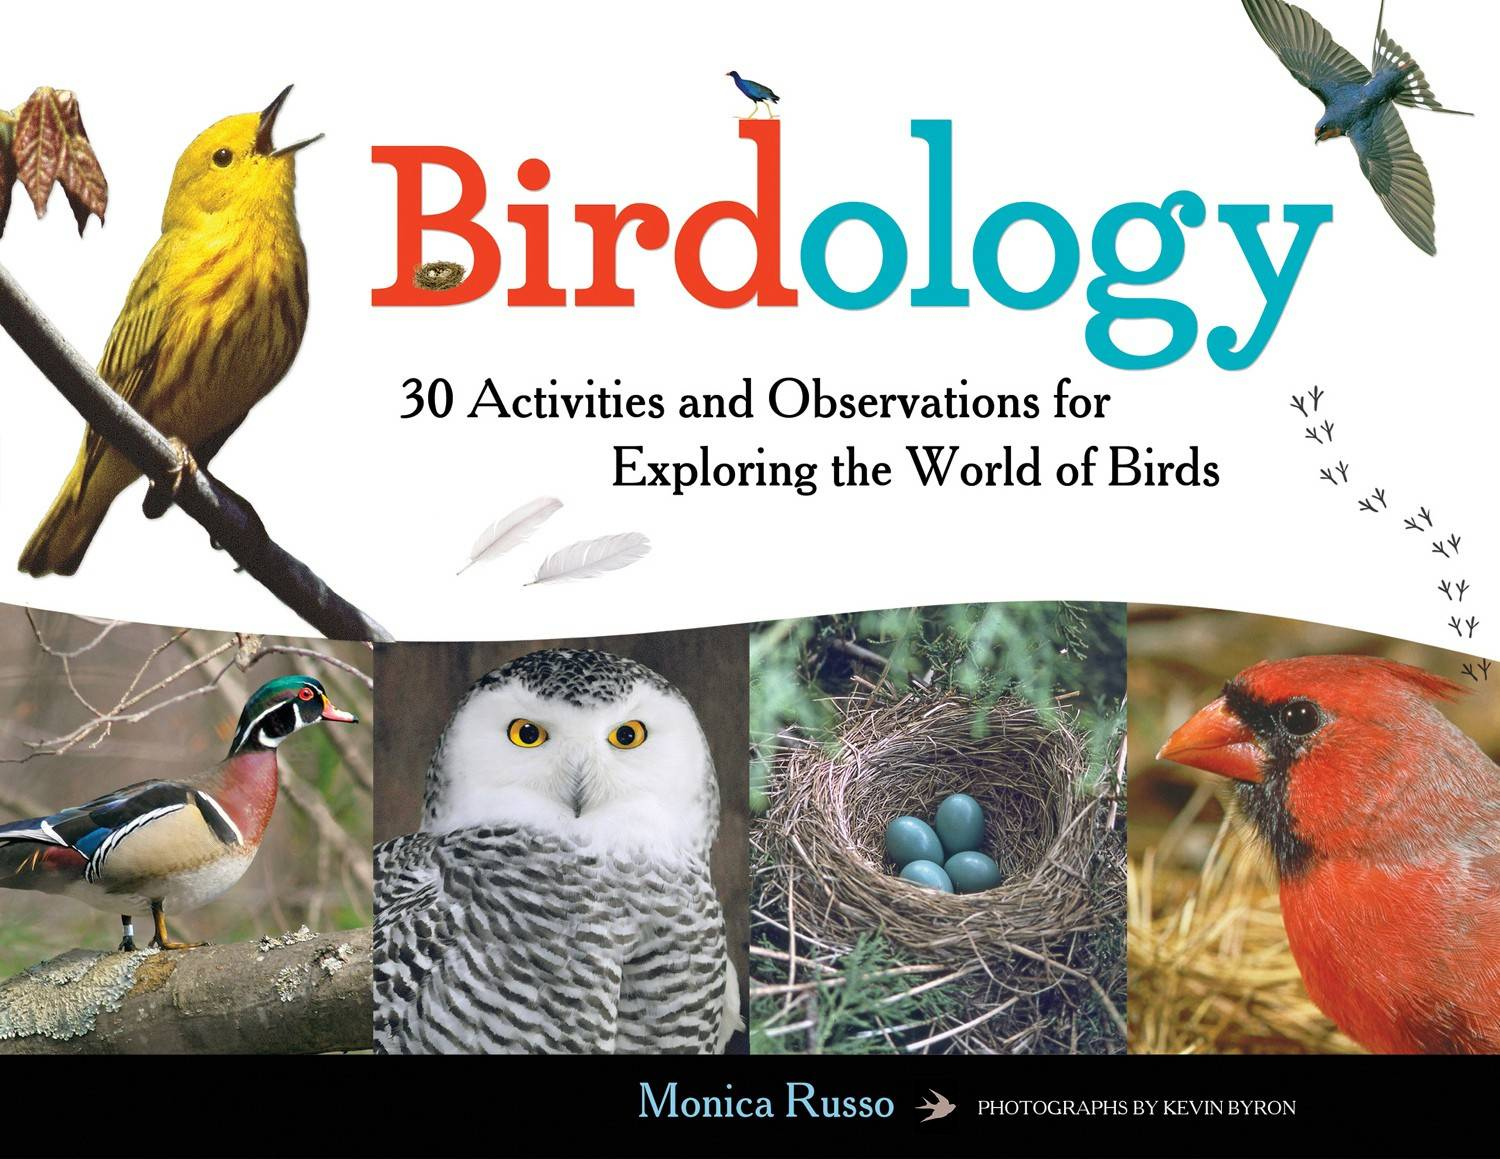 """Birdology"" by Monica Russo, photographs by Kevin Byron (2015, Chicago Review Press), $15.95, 108 pages."